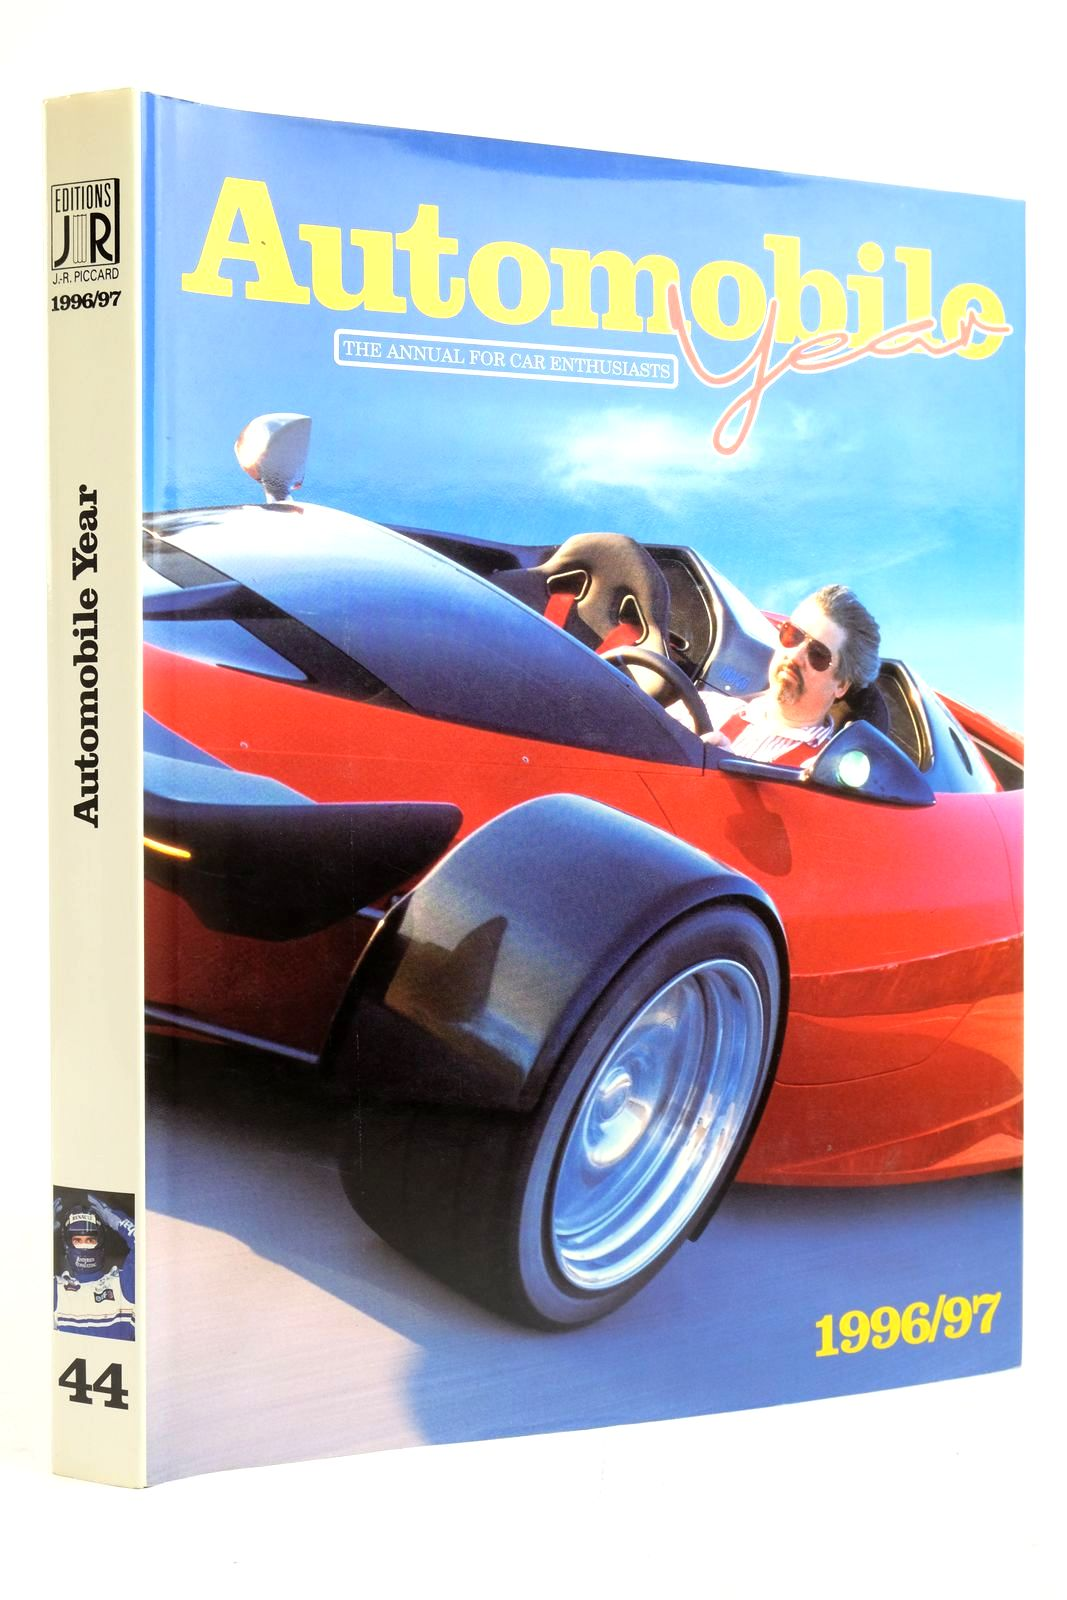 Photo of AUTOMOBILE YEAR No. 44 1996/97 written by Norris, Ian Emslie, Robin et al, published by Editions Jr (STOCK CODE: 2135271)  for sale by Stella & Rose's Books